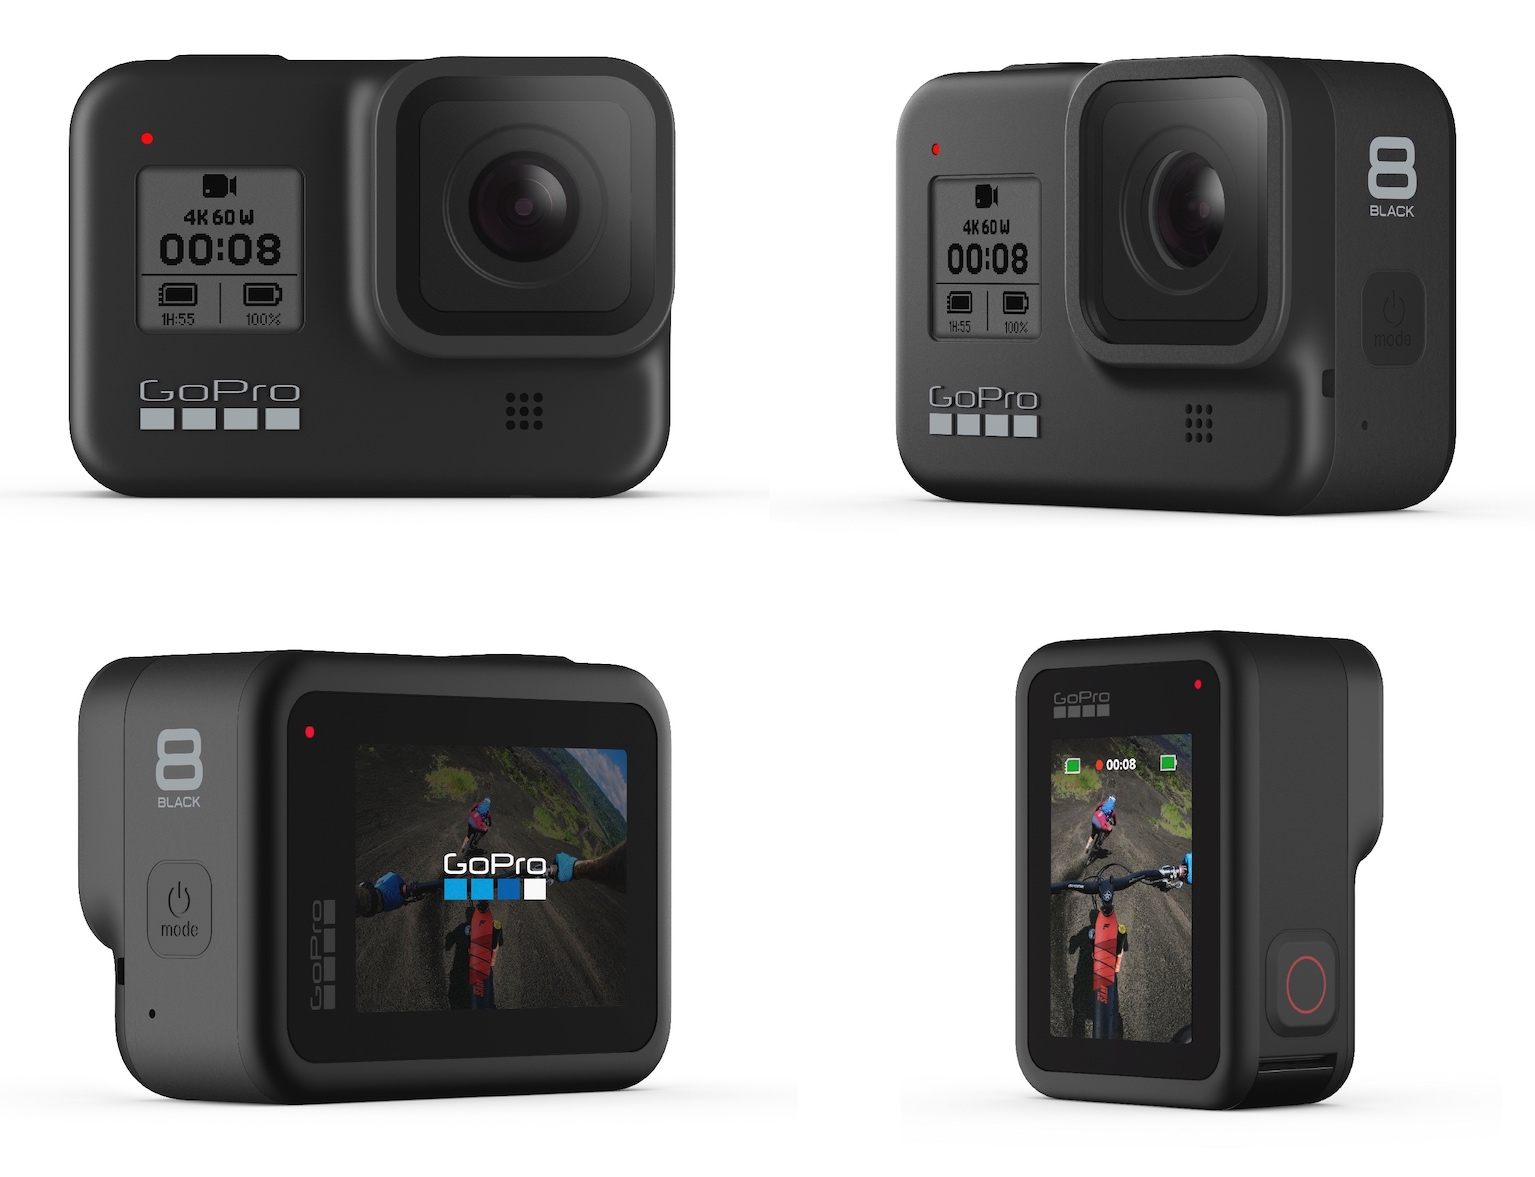 Introducing the new GoPro HERO8 Black